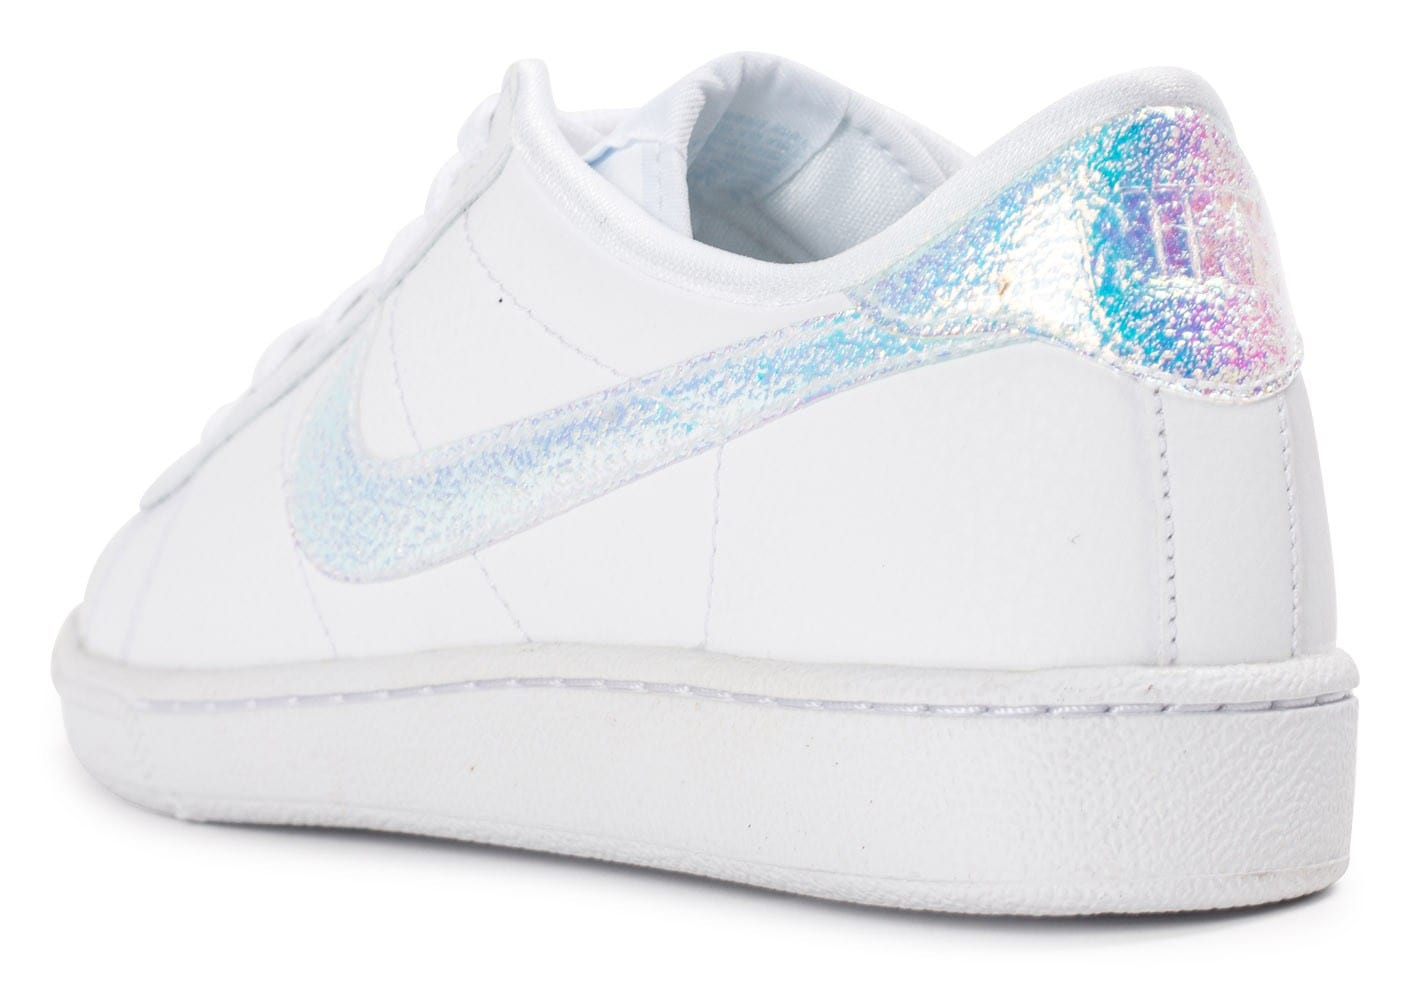 0cd51d7d936 Nike Tennis Classic Iridescente - Chaussures Baskets femme - Chausport